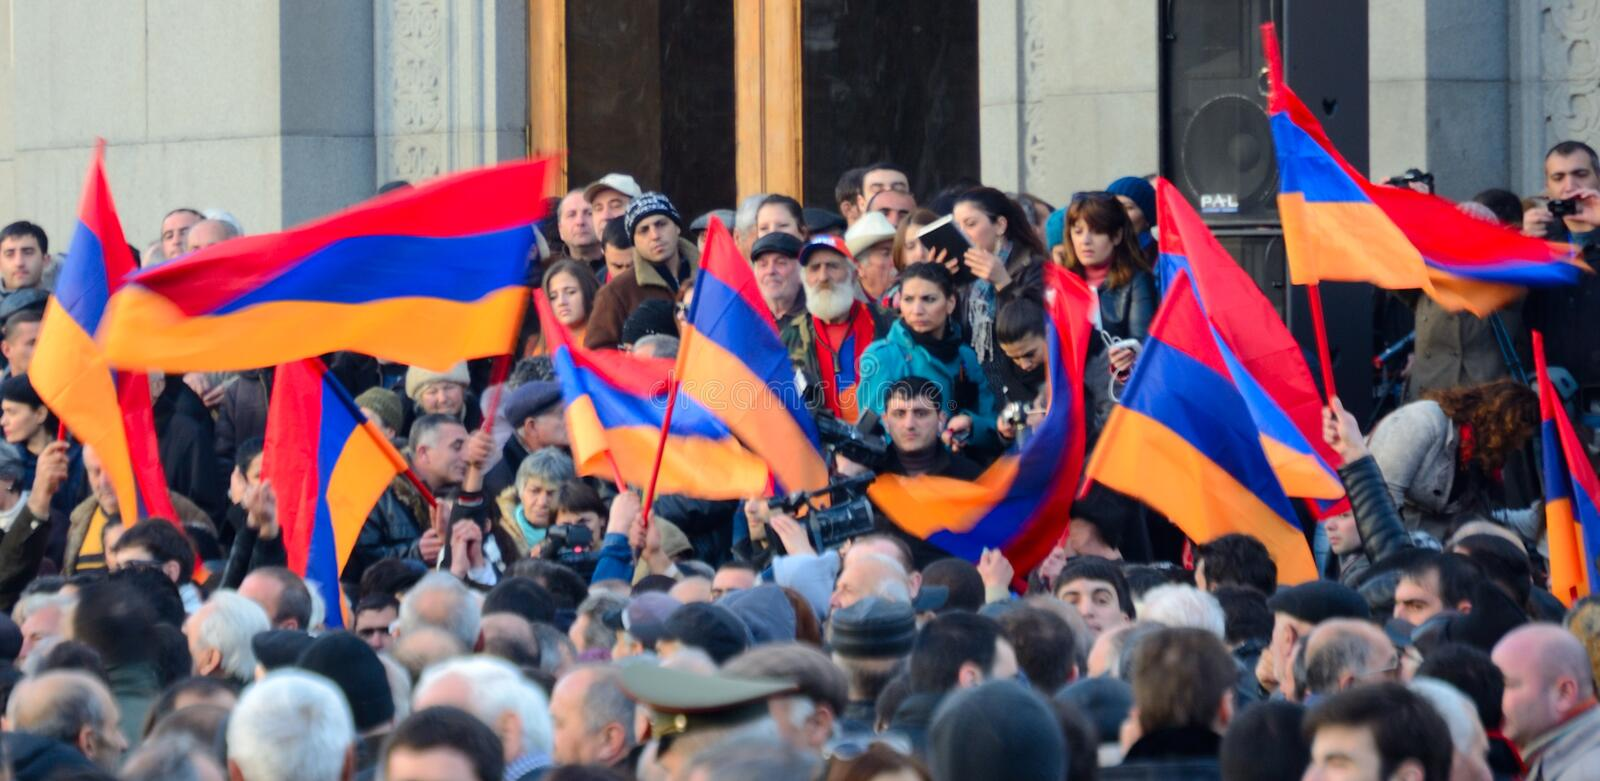 Thousands protest in Armenia against re-elected president. Thousands of people protested in Armenia's capital Yerevan on Friday against the re-election of stock photography